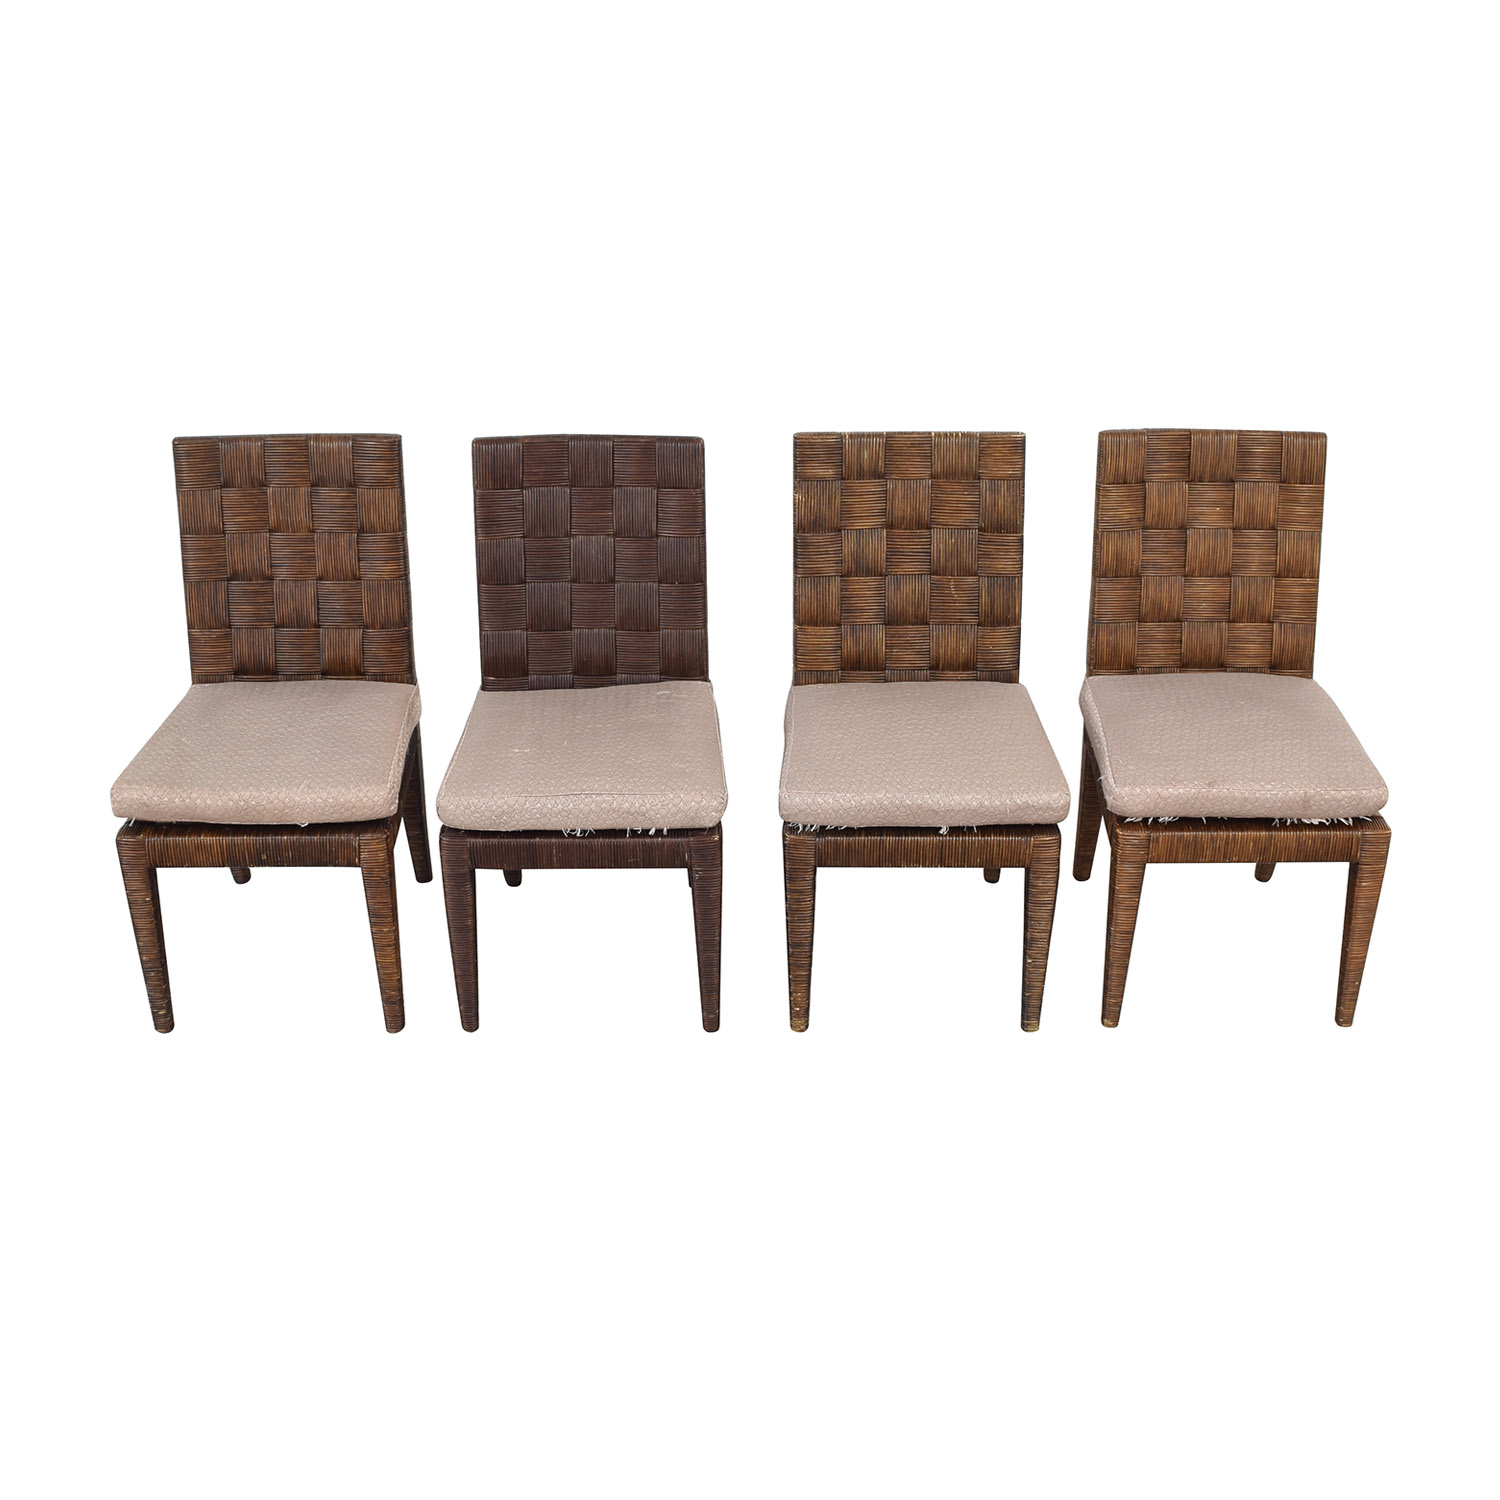 buy Donghia John Hutton Block Island Side Dining Chairs Donghia Chairs